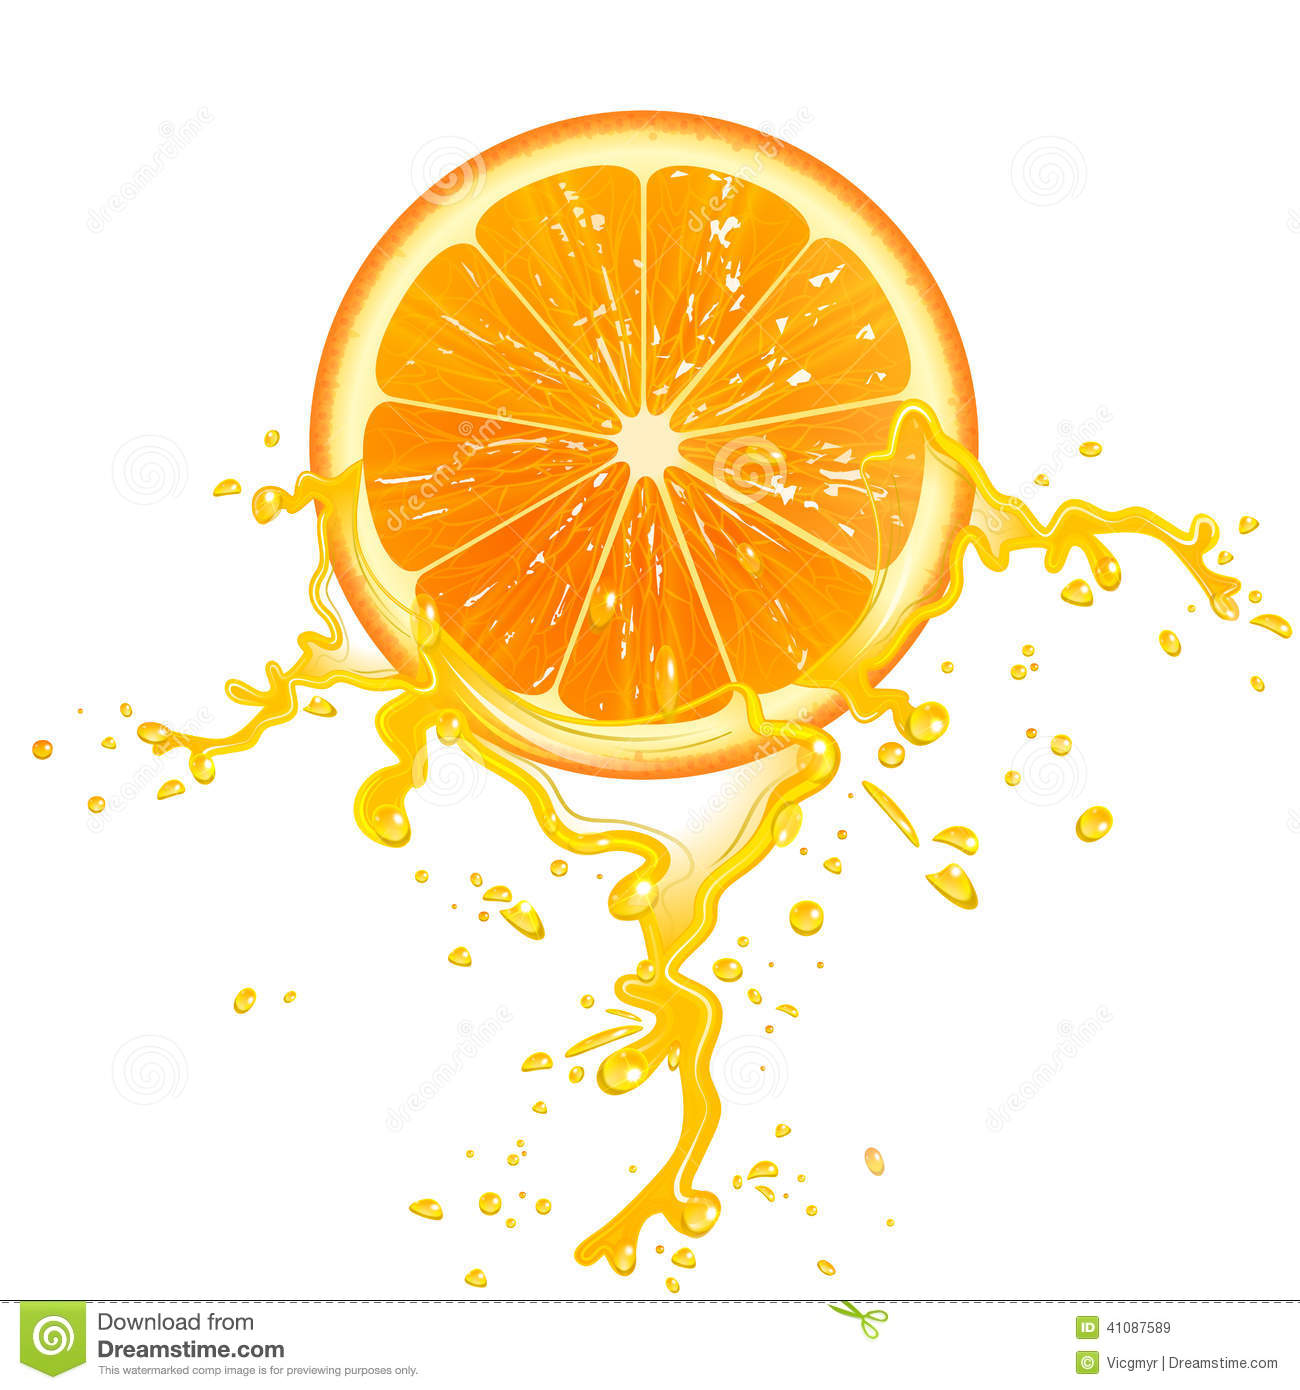 Orange Slice Stock Vector - Image: 41087589